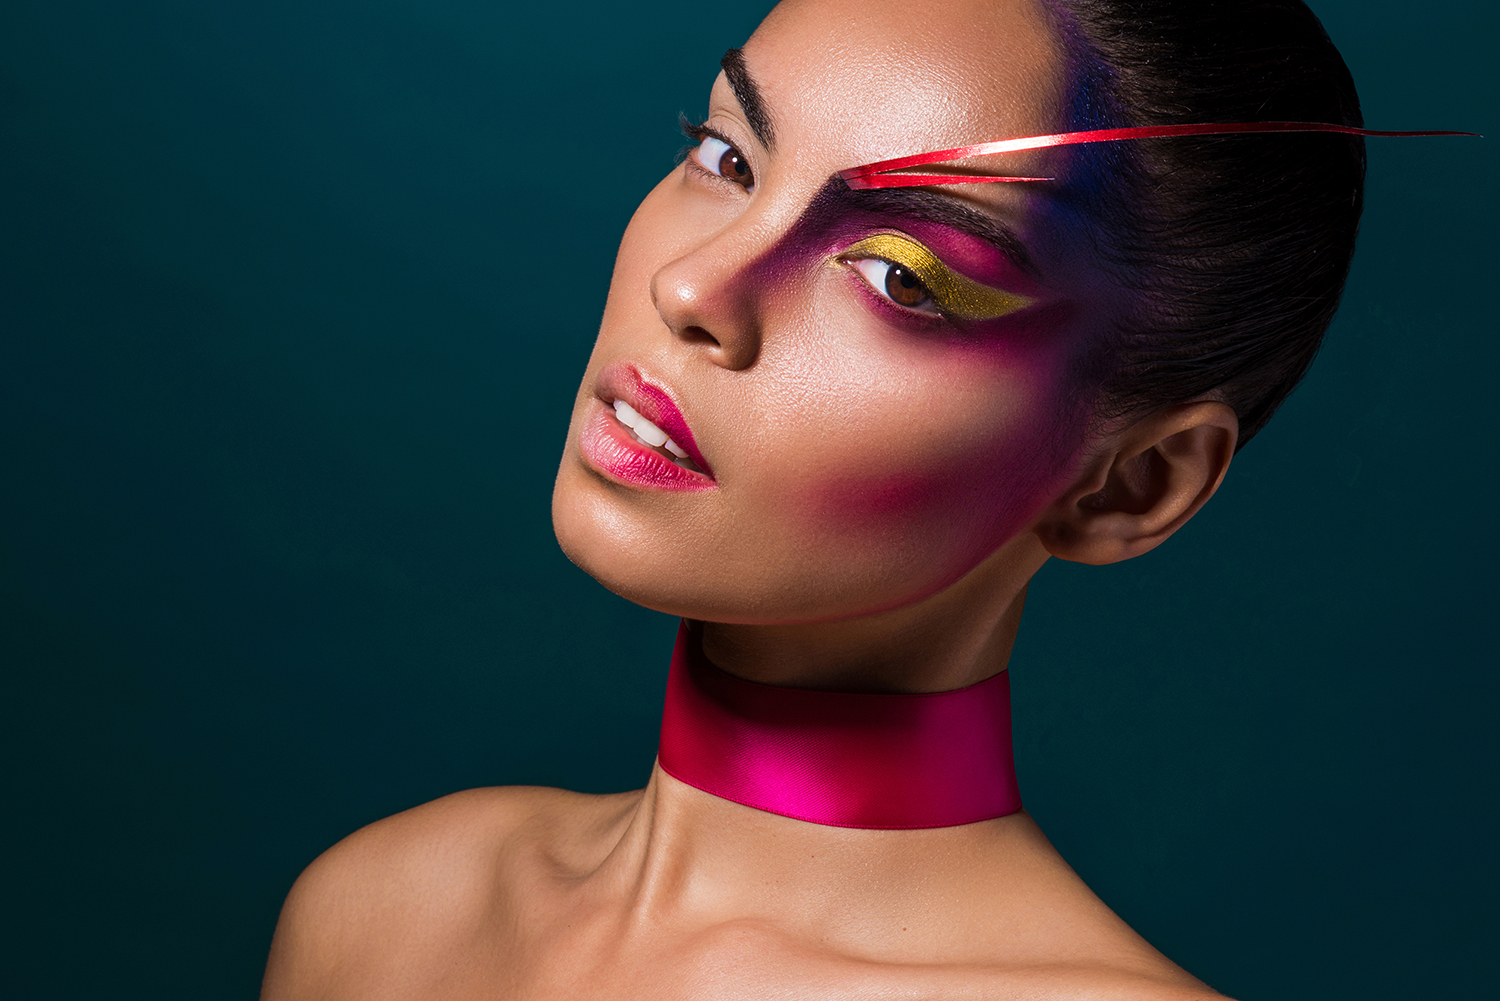 High fashion makeup body art by Agne Skaringa 5.jpg